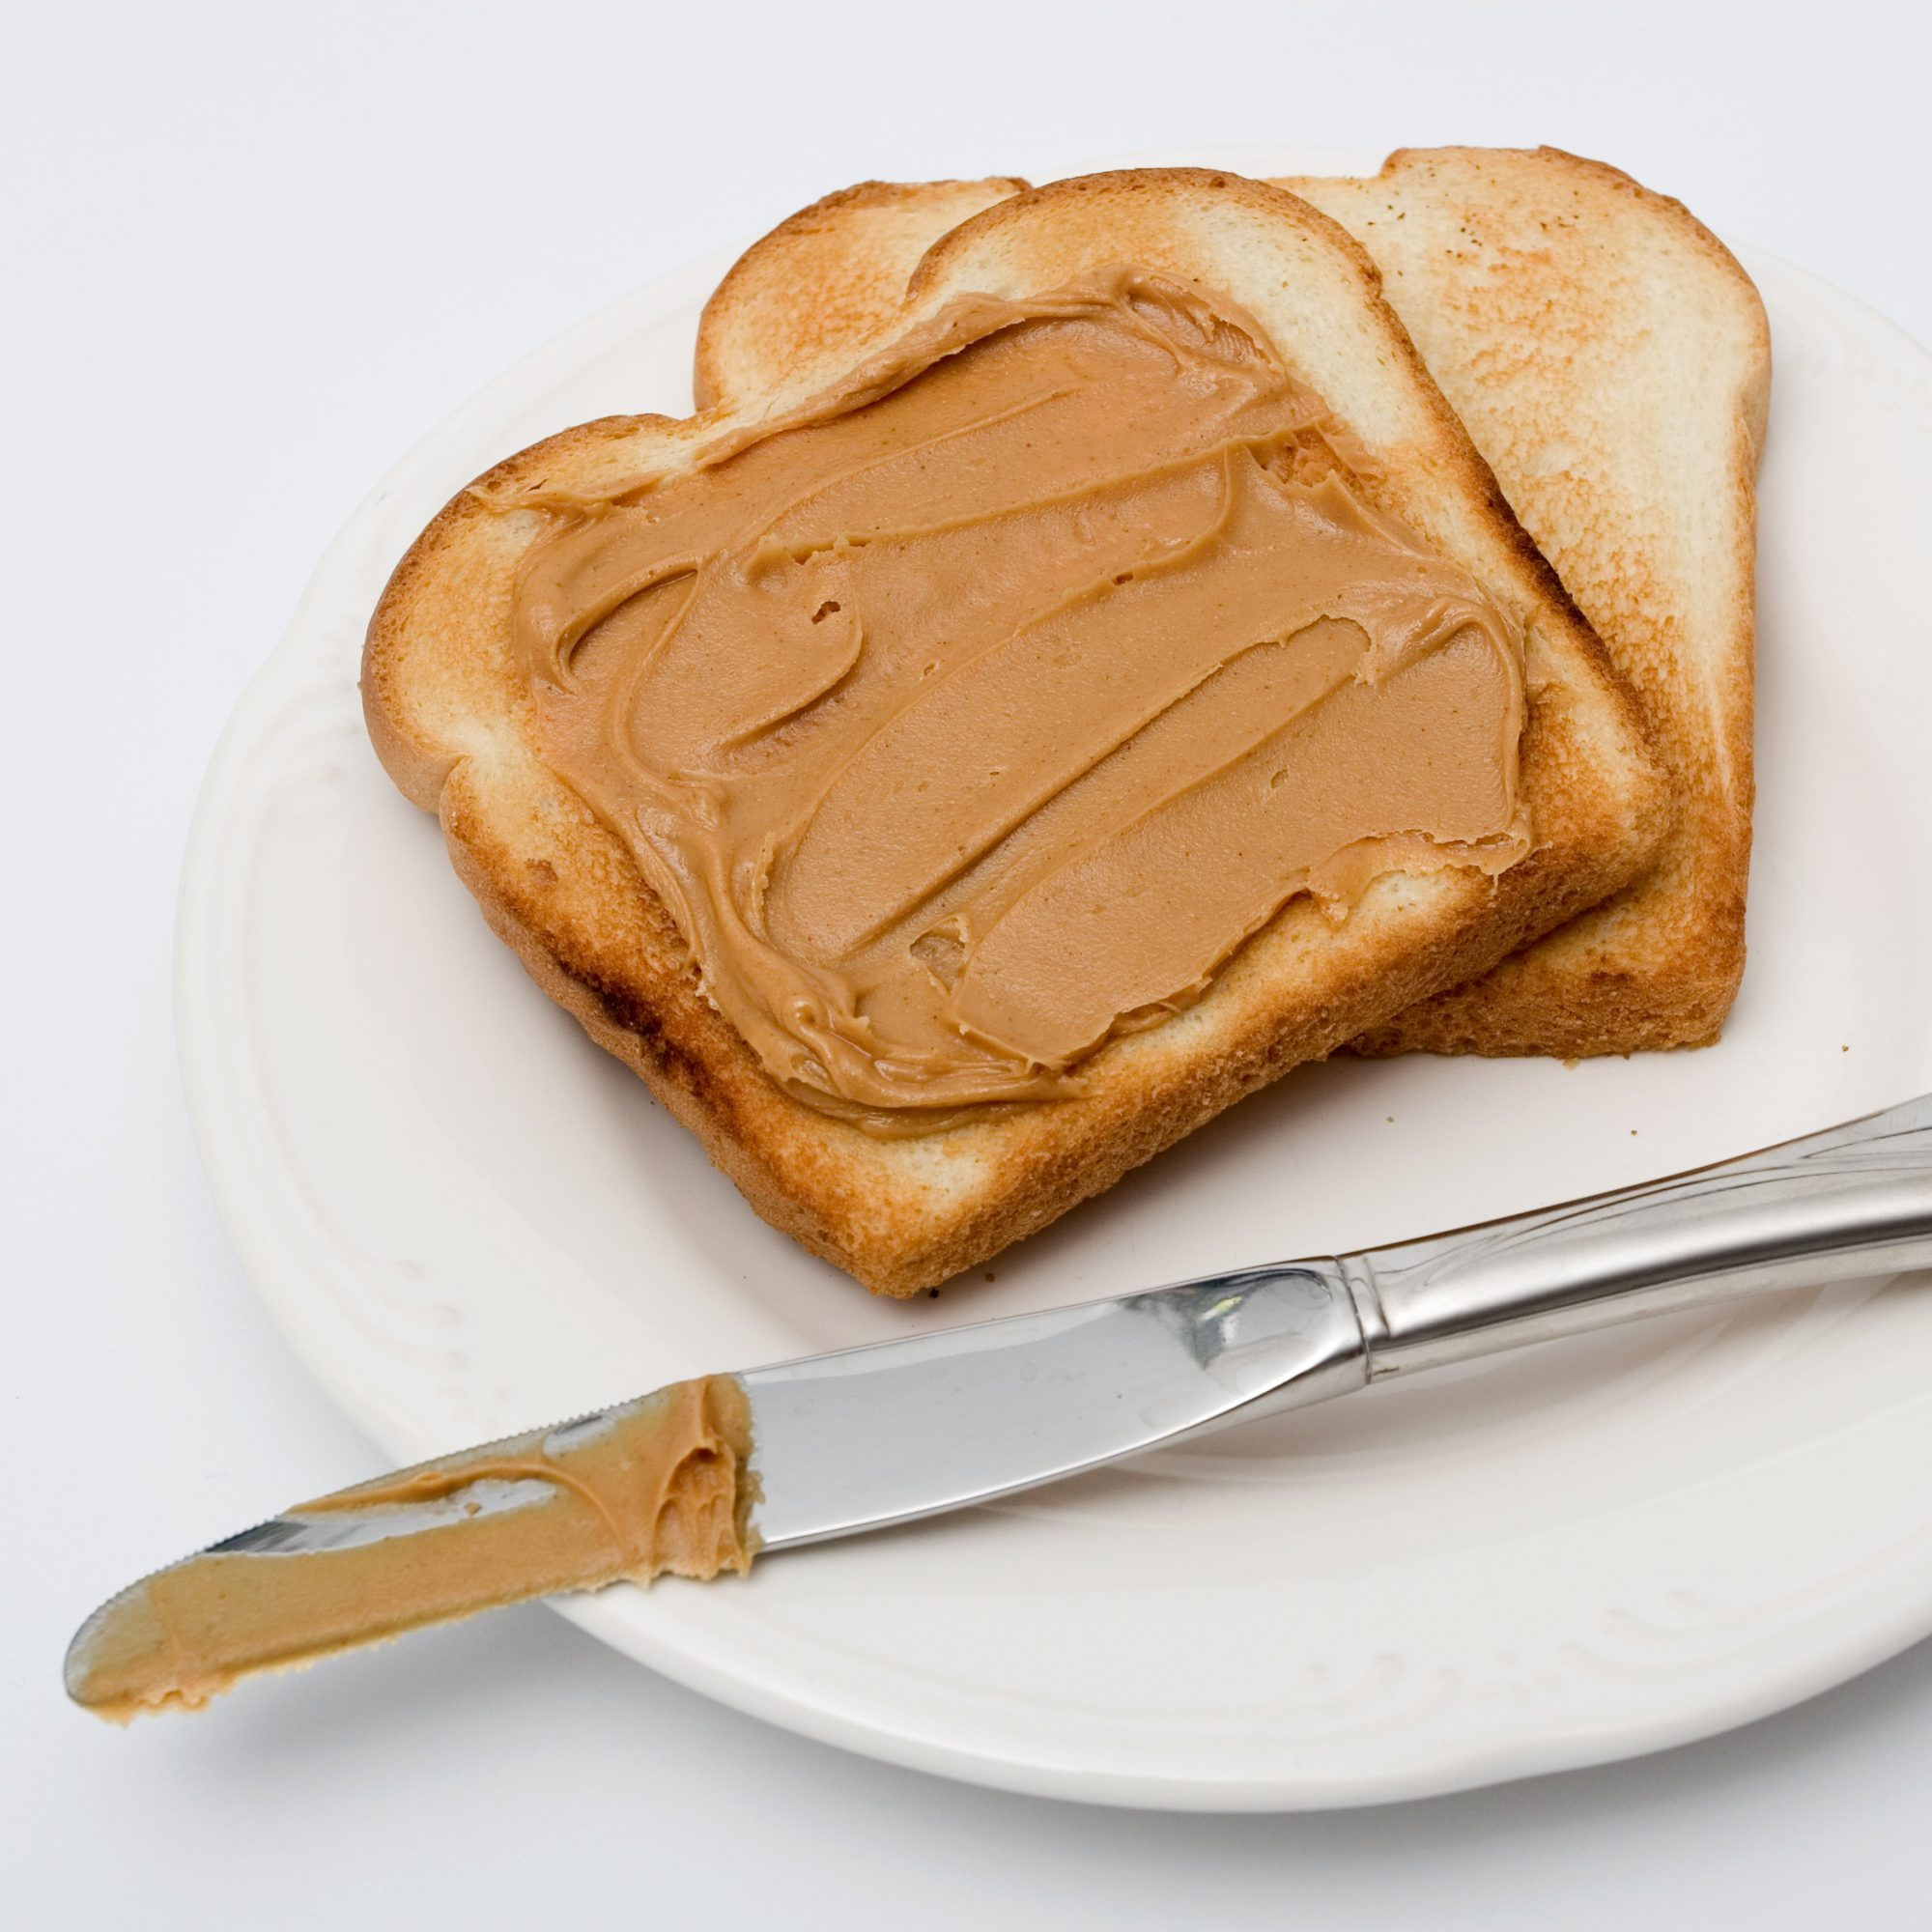 London Is Getting a Peanut Butter Toast Bar and We're Extremely Jealous